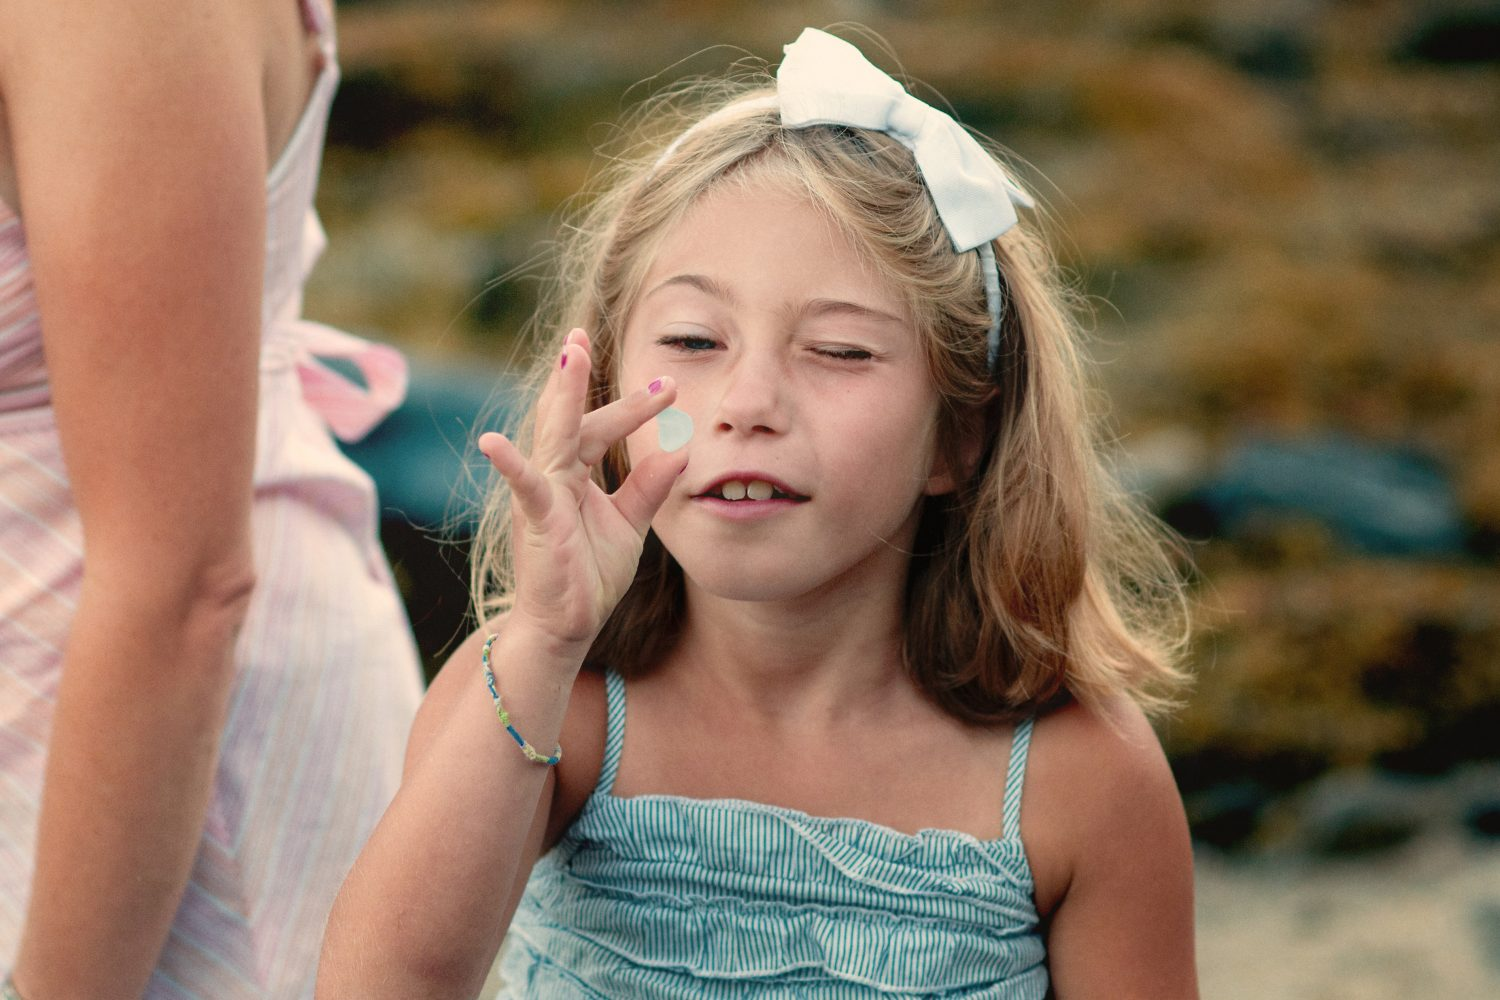 young girl looking at small blue pebble with one eye closed